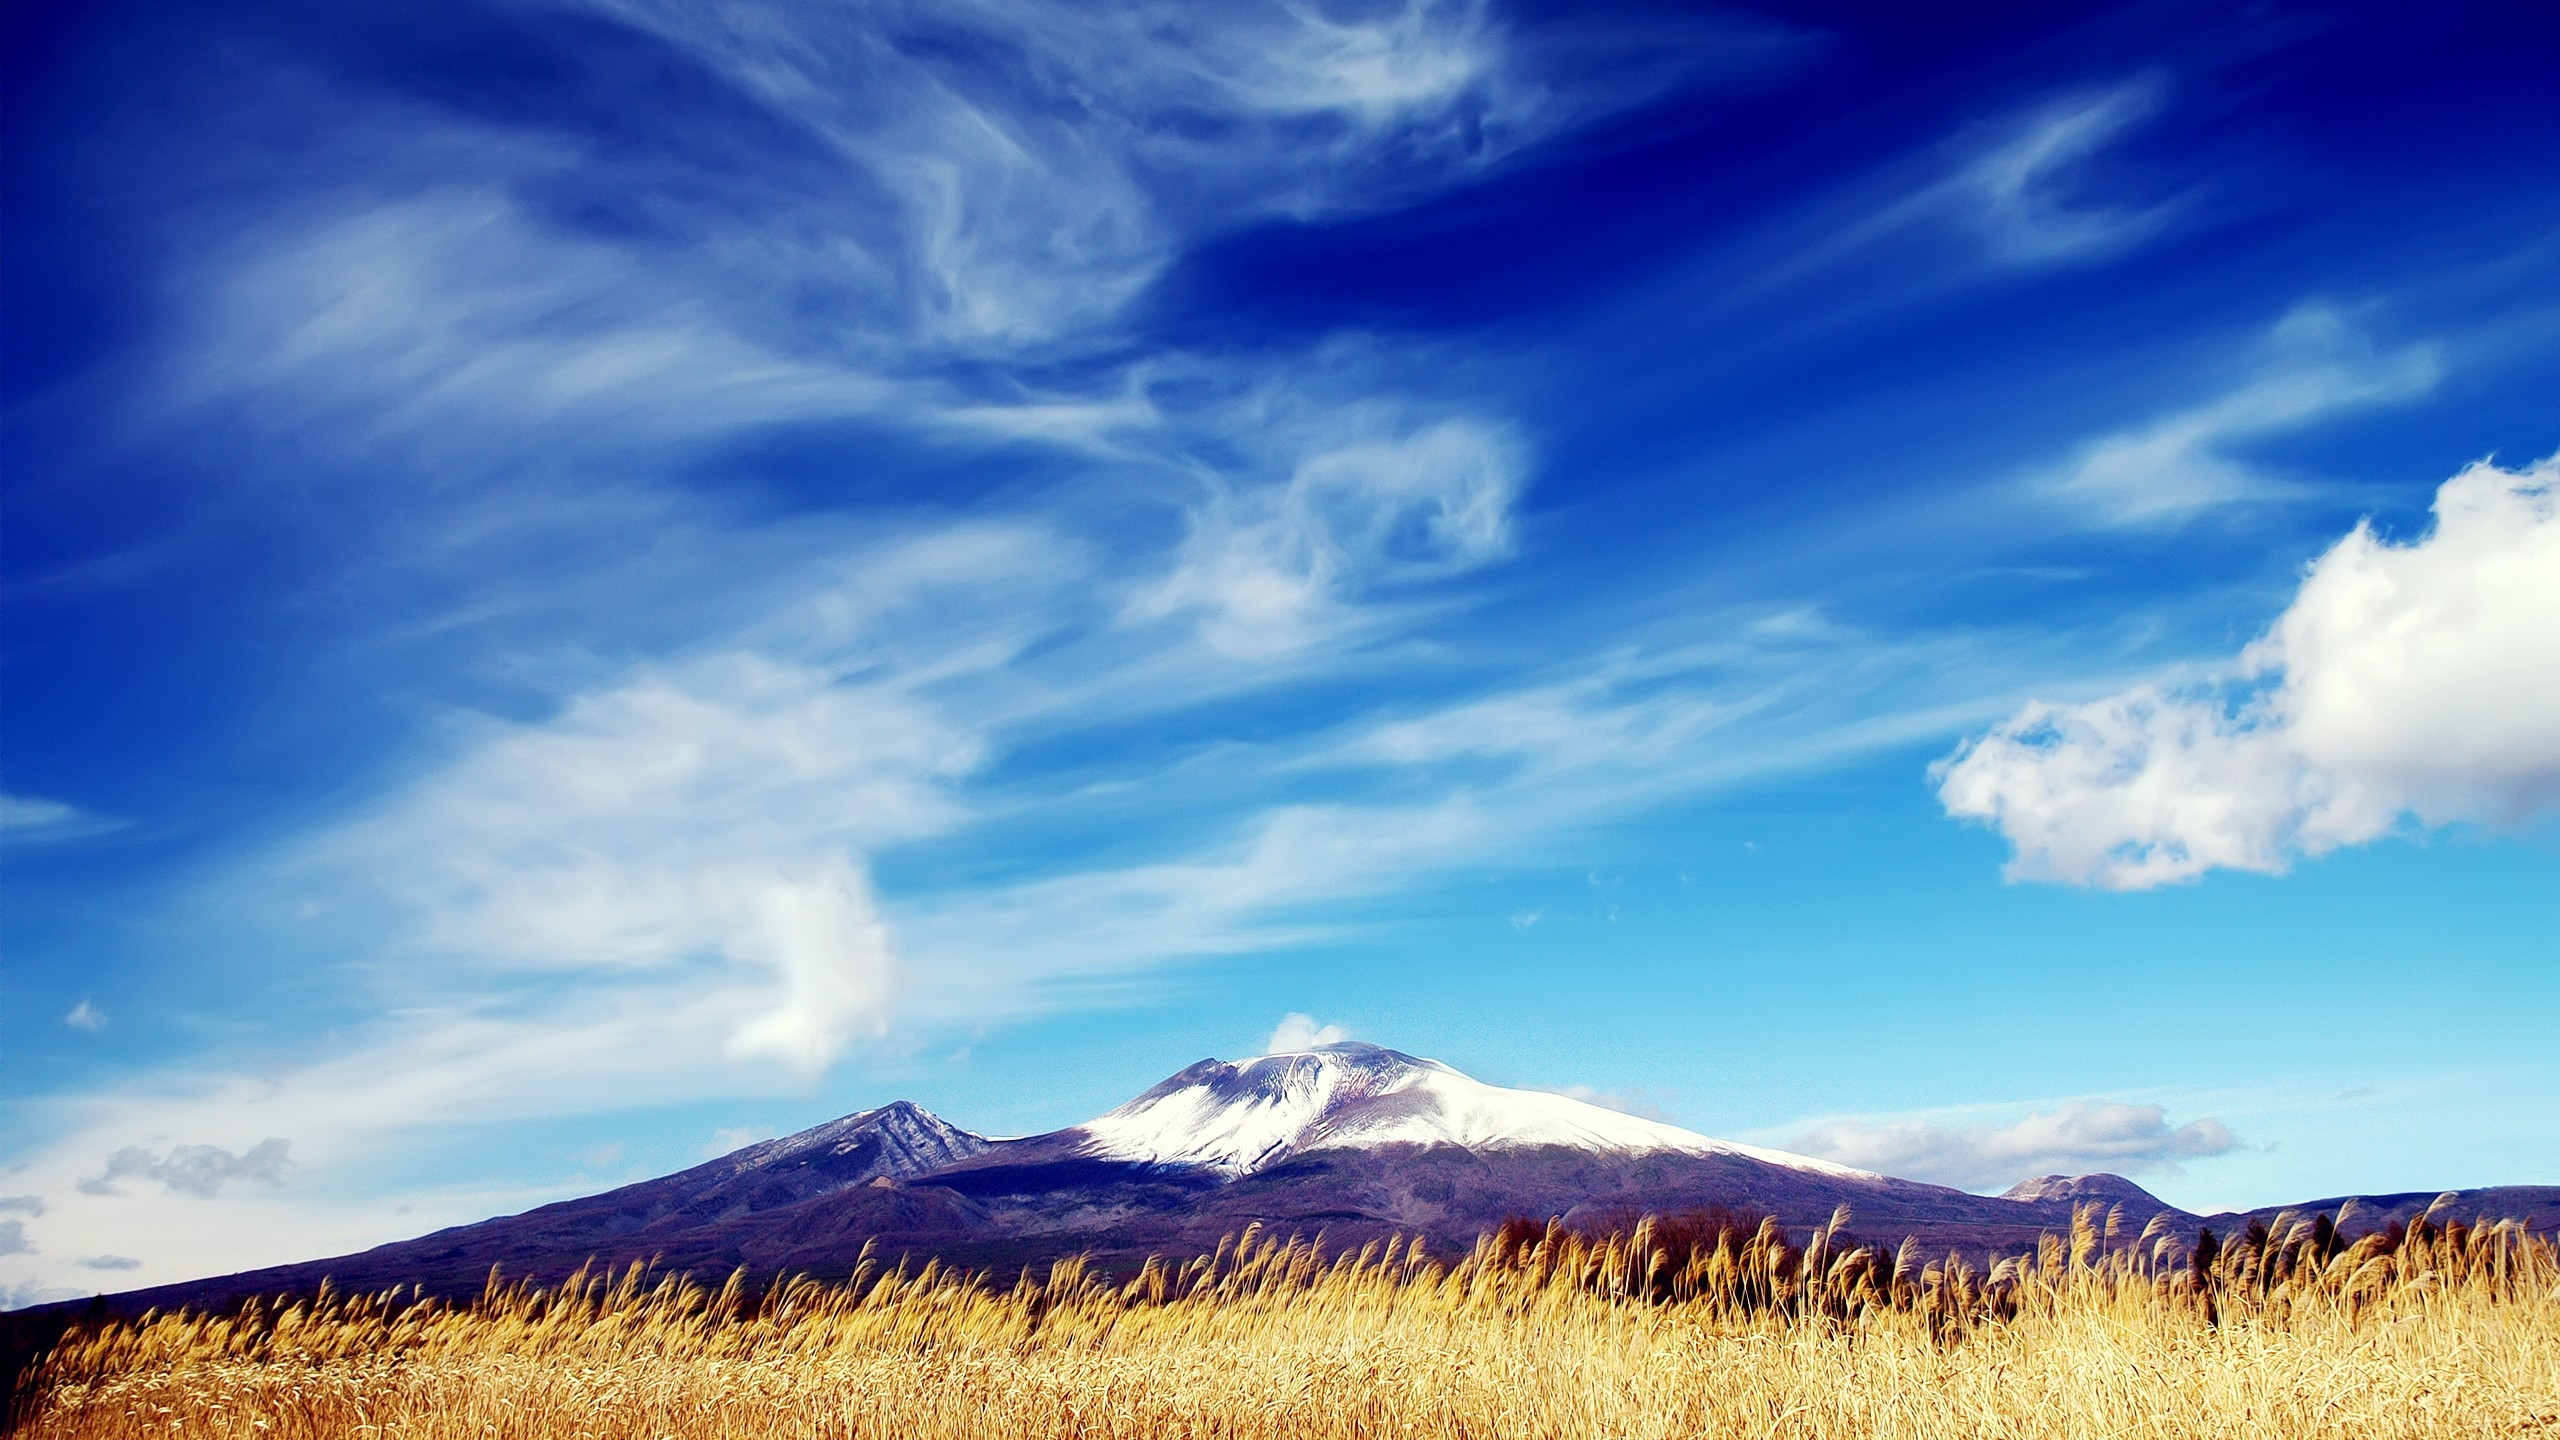 2560x1440 Warm And Sunny Landscape Desktop Pc And Mac Wallpaper